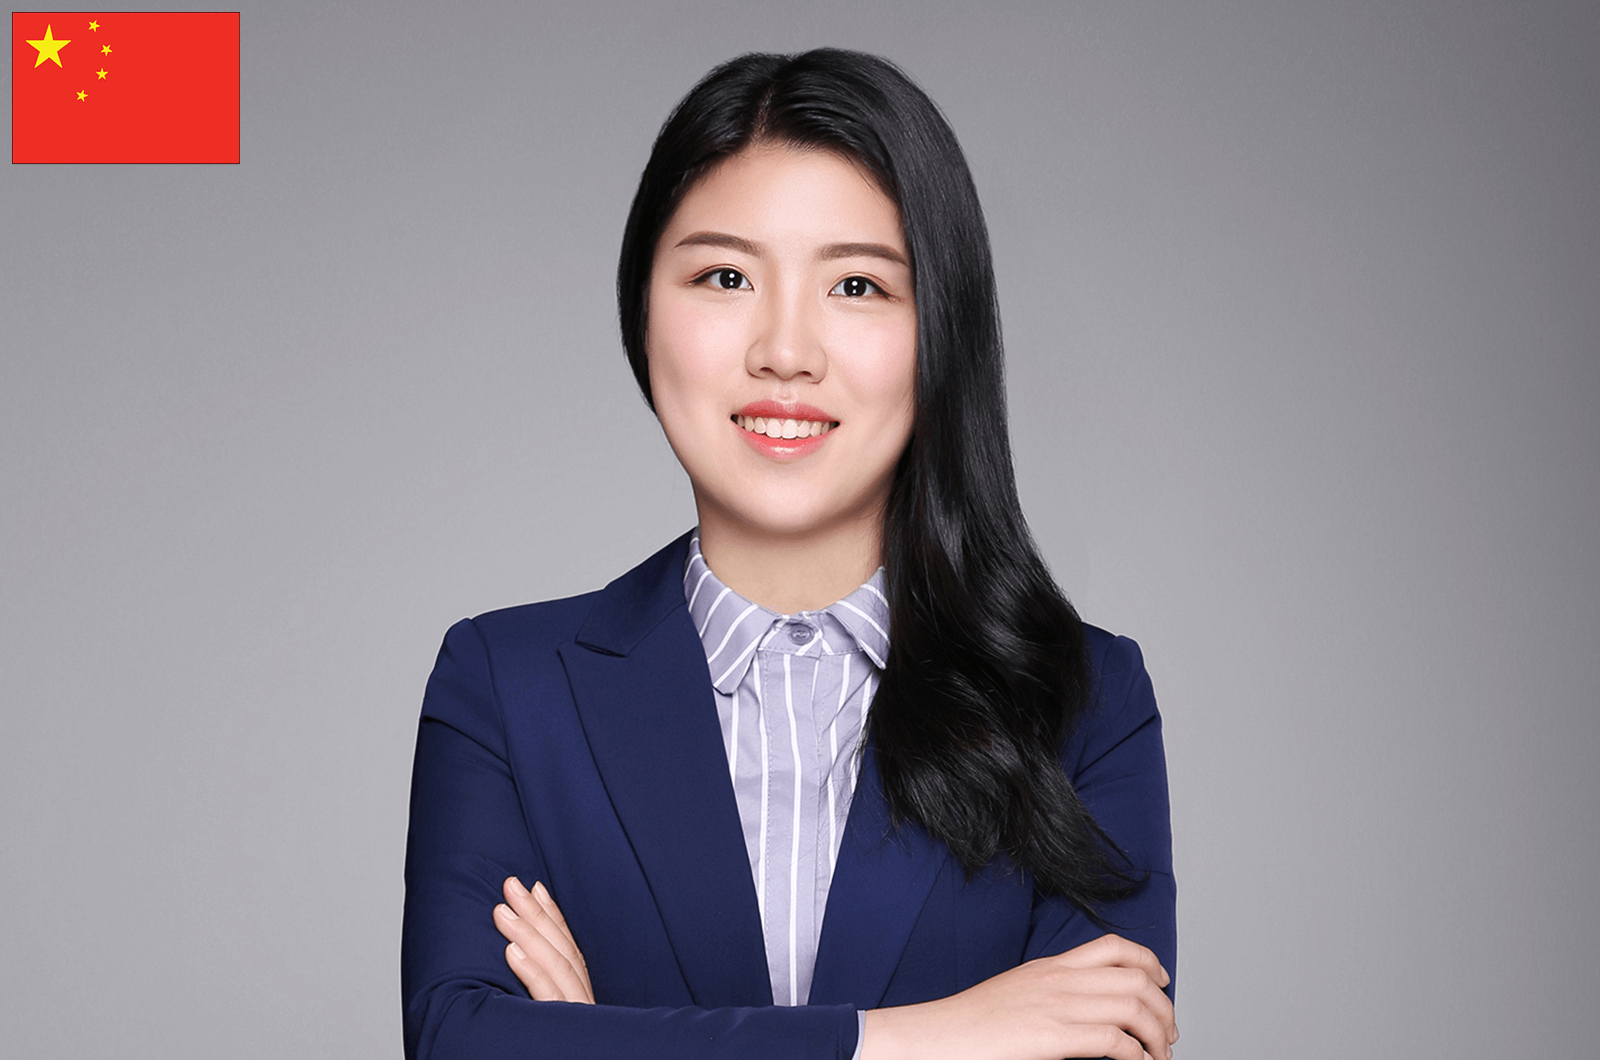 Julia Gu in suit jacket crossing arms and smiling